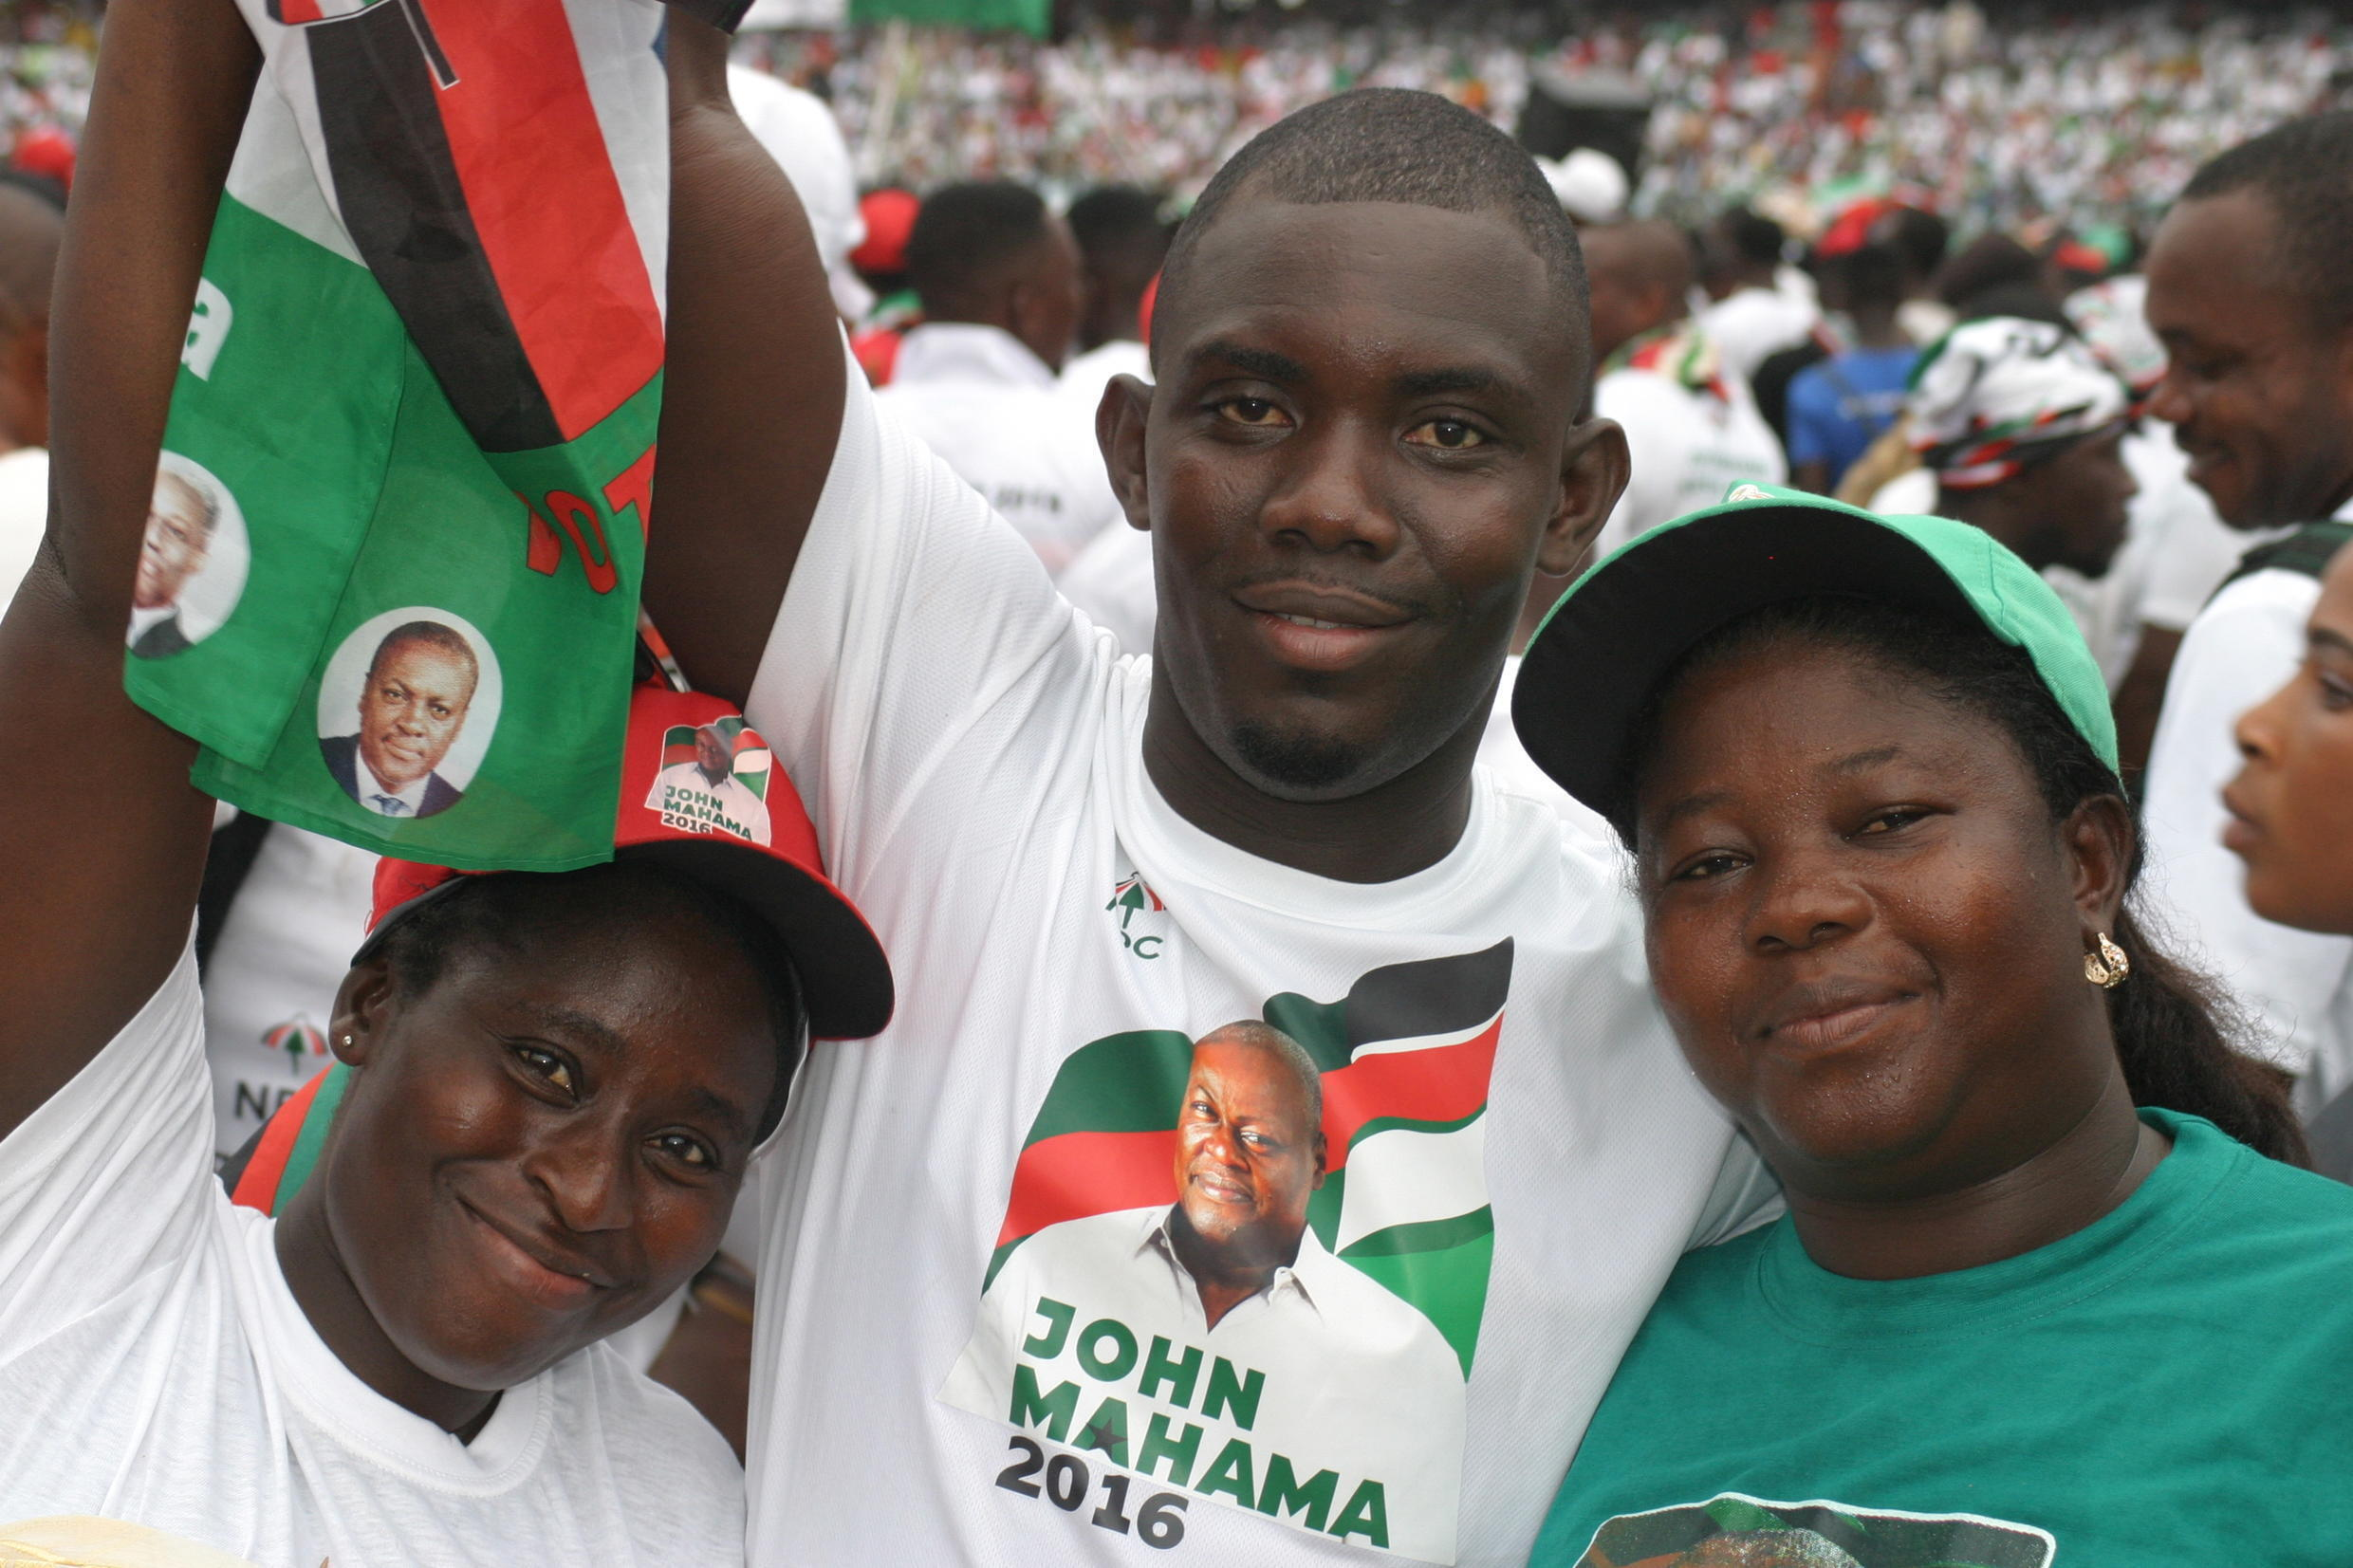 Mahama's supporters were kept entertained as they waited for him to arrive.